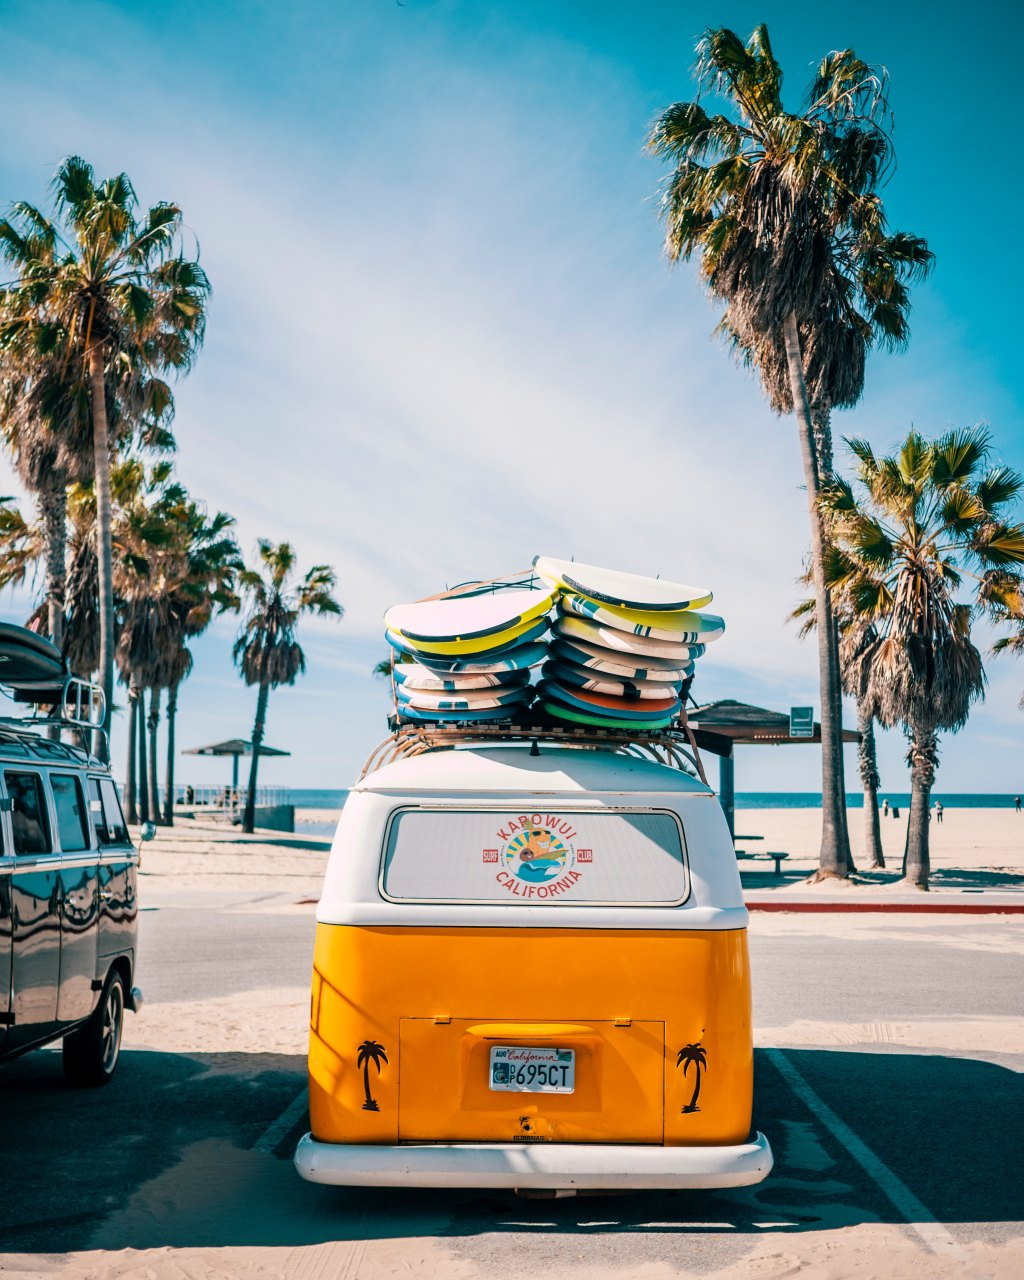 Van with surfboards parked in Venice Beach, Los Angeles, California.